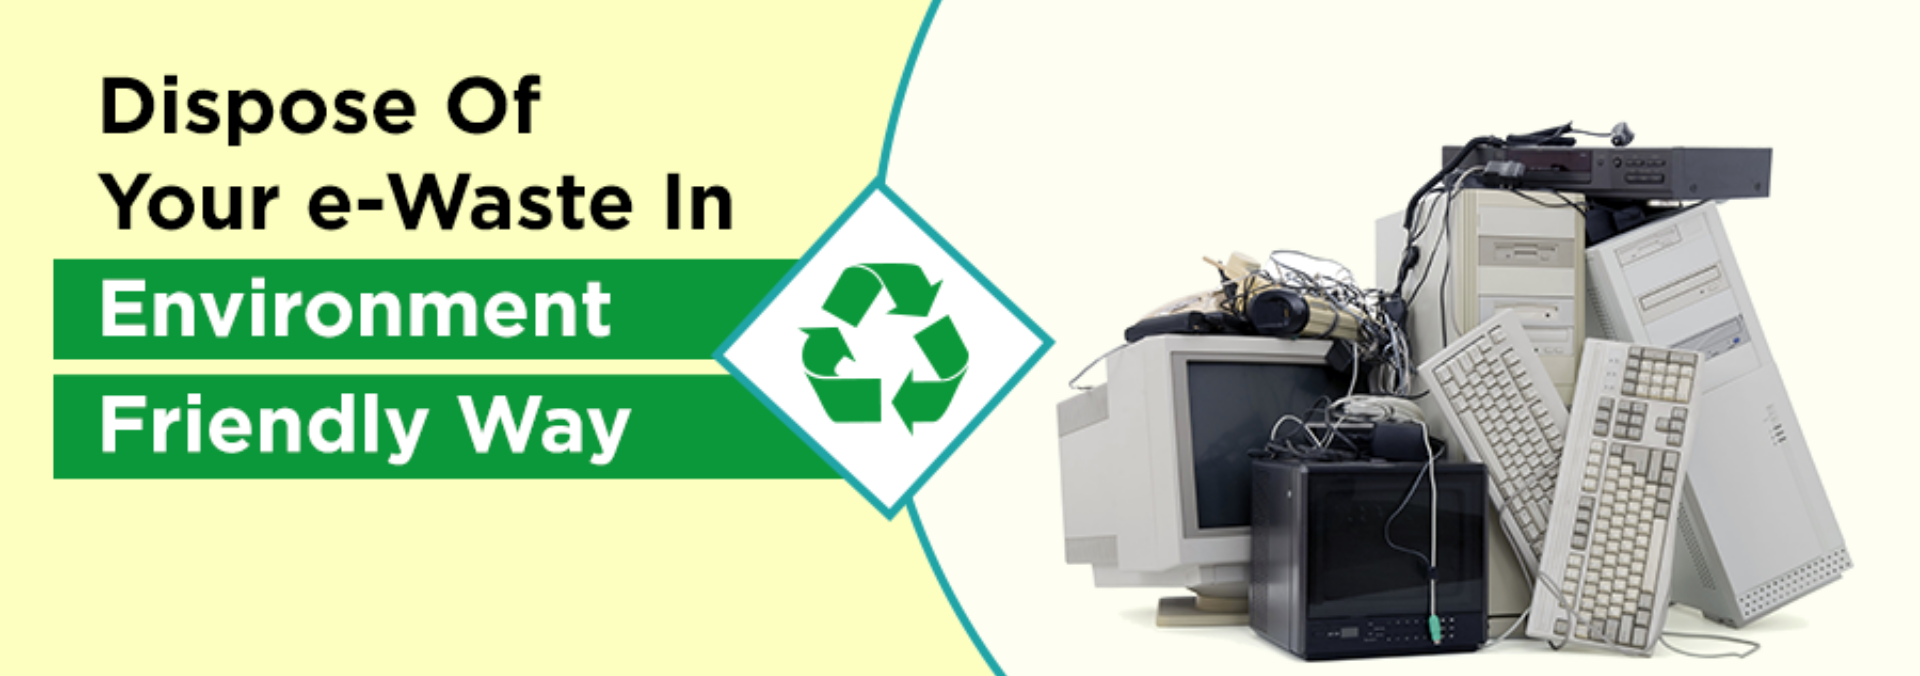 Restore our earth by disposing e-waste in an environment friendly way